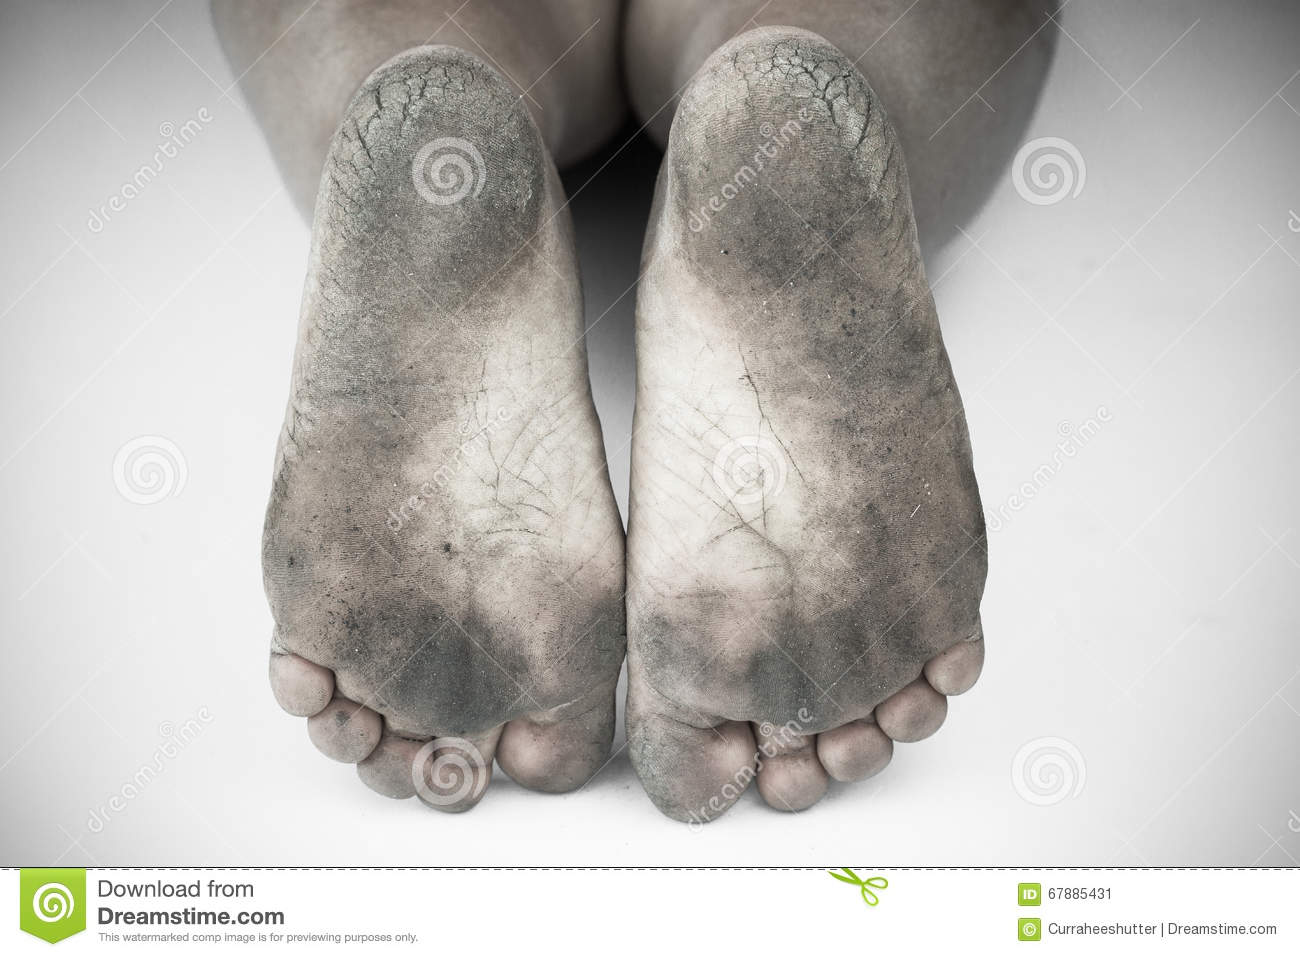 Monochrome Or Back And White Of Dirty Foot Or Cracked Heels Isolate.